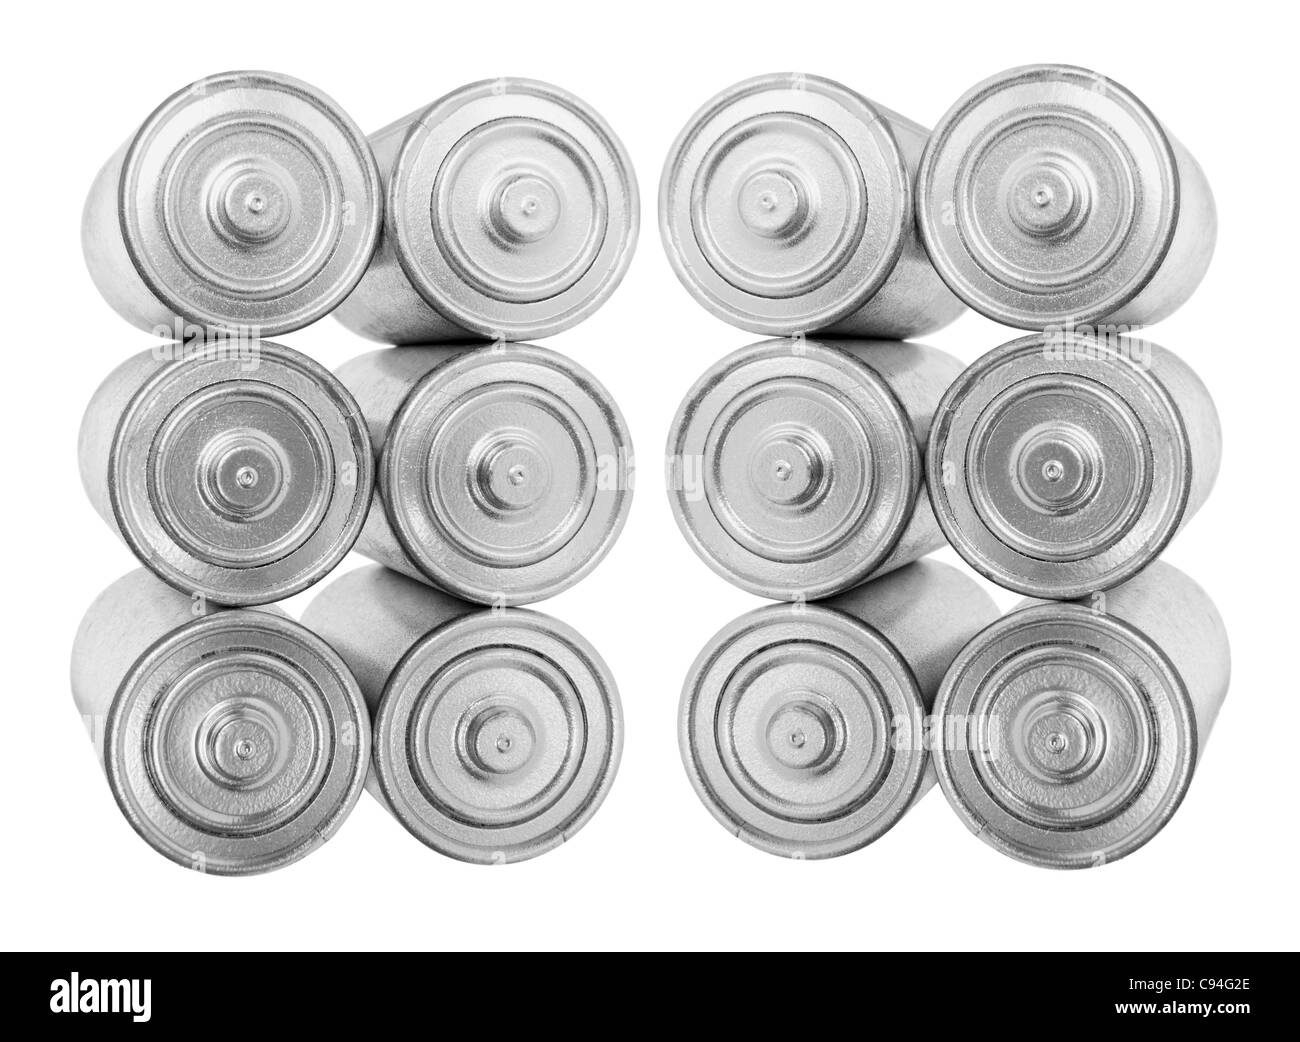 Stacks of Batteries - Stock Image